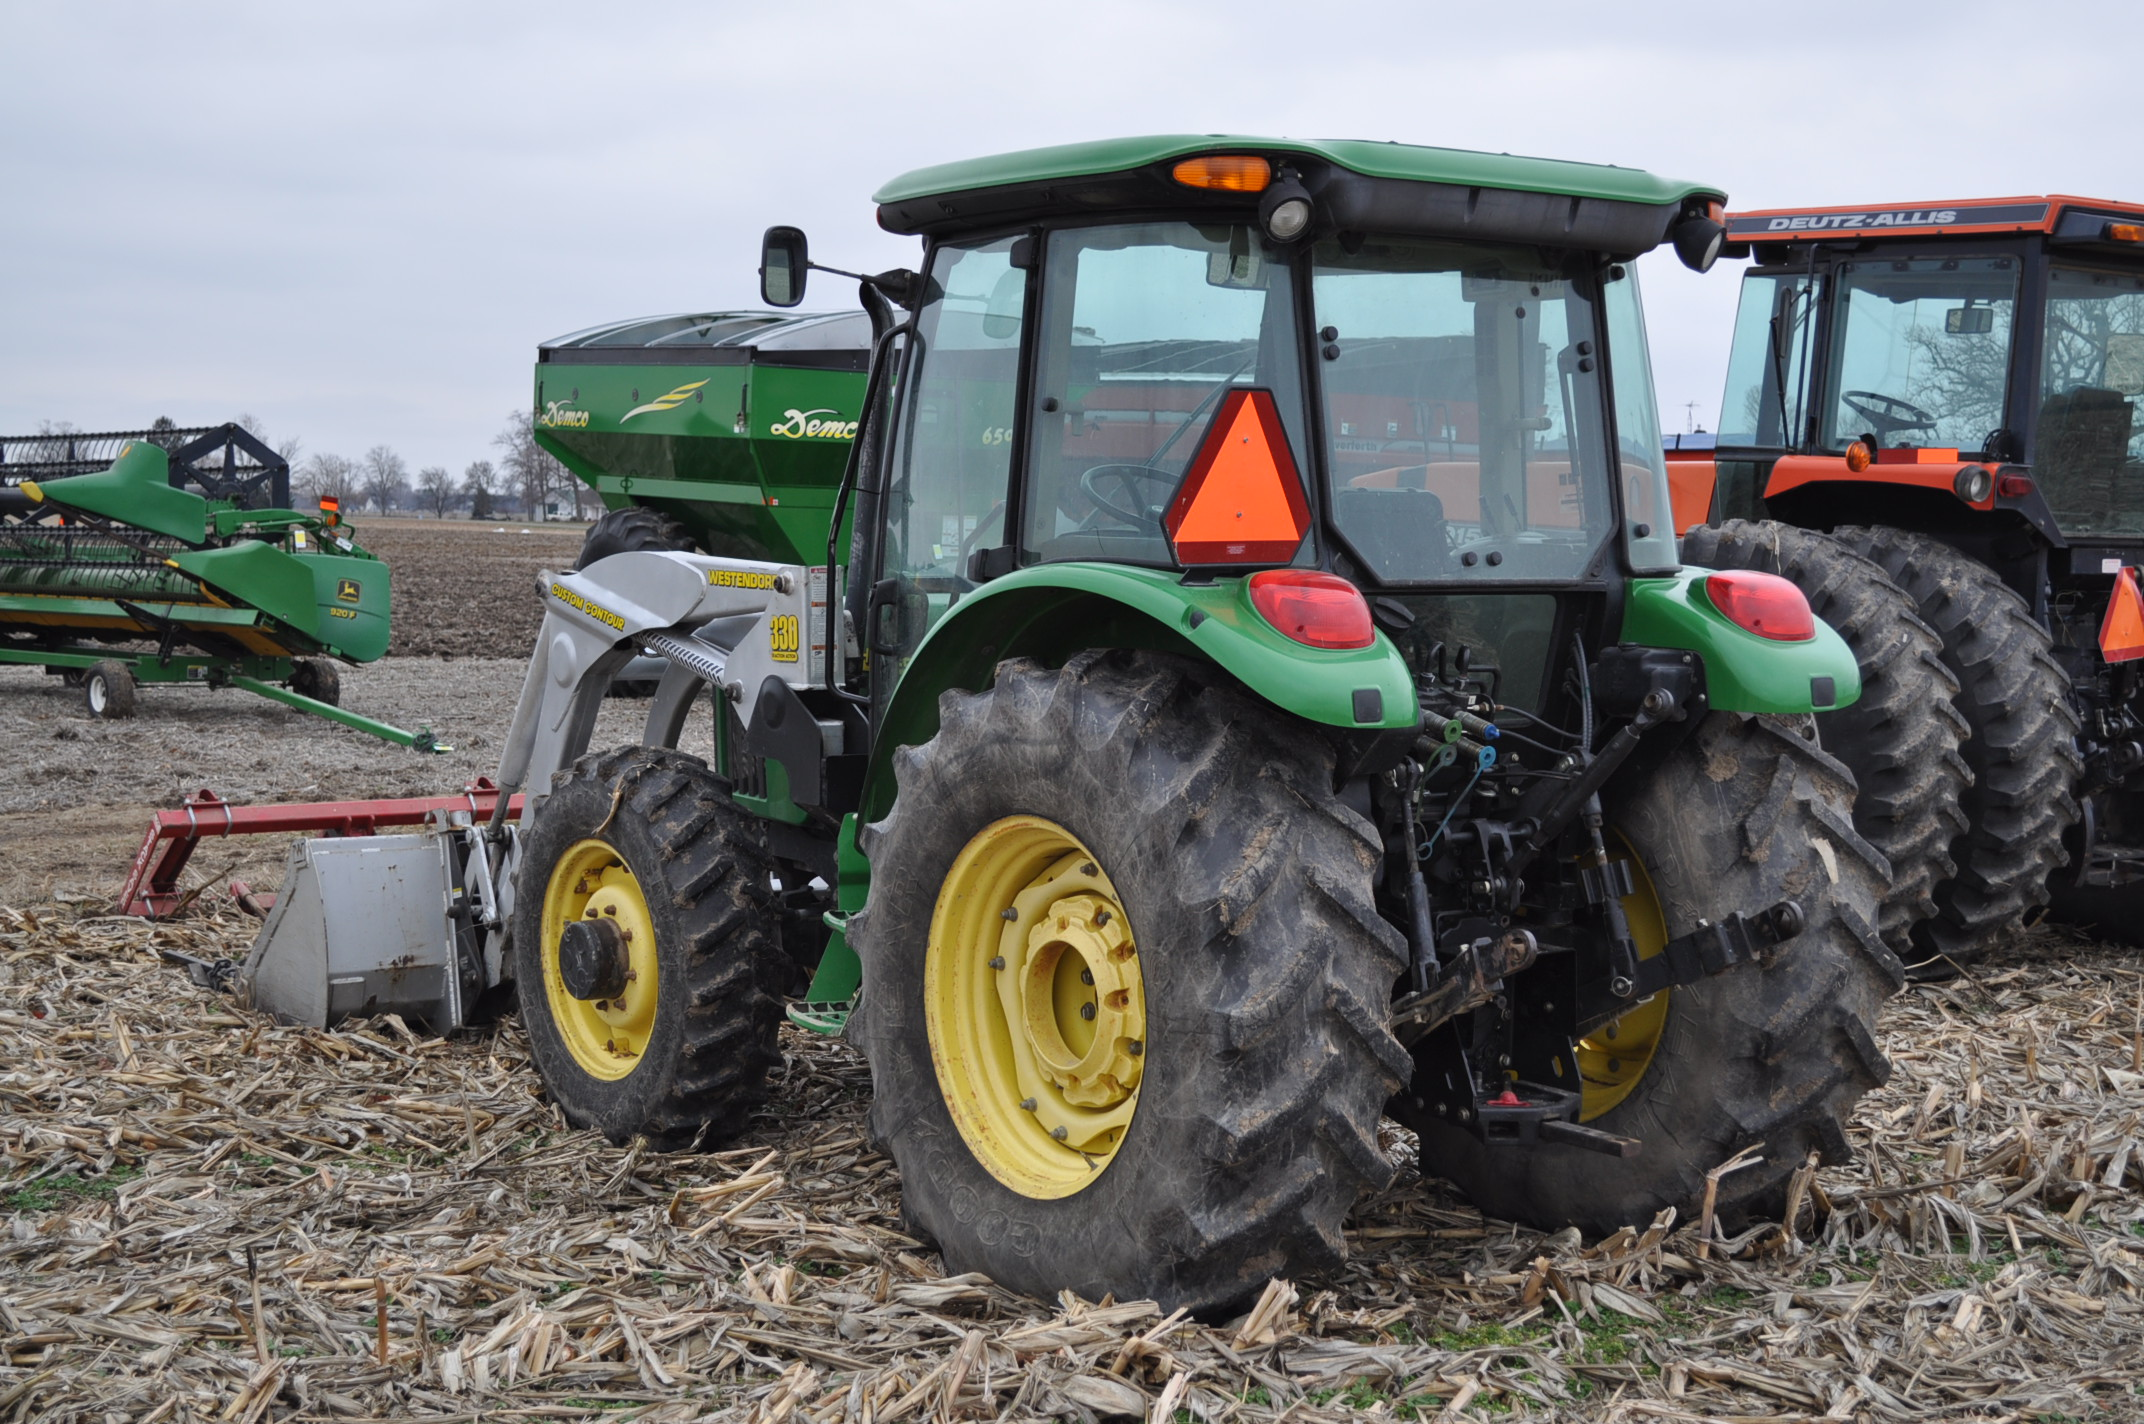 John Deere 5520 utility tractor, MFWD, 18.4 R 30 rear, 12.4-24 front, rear wheel wts, 2 hyd remotes, - Image 2 of 26